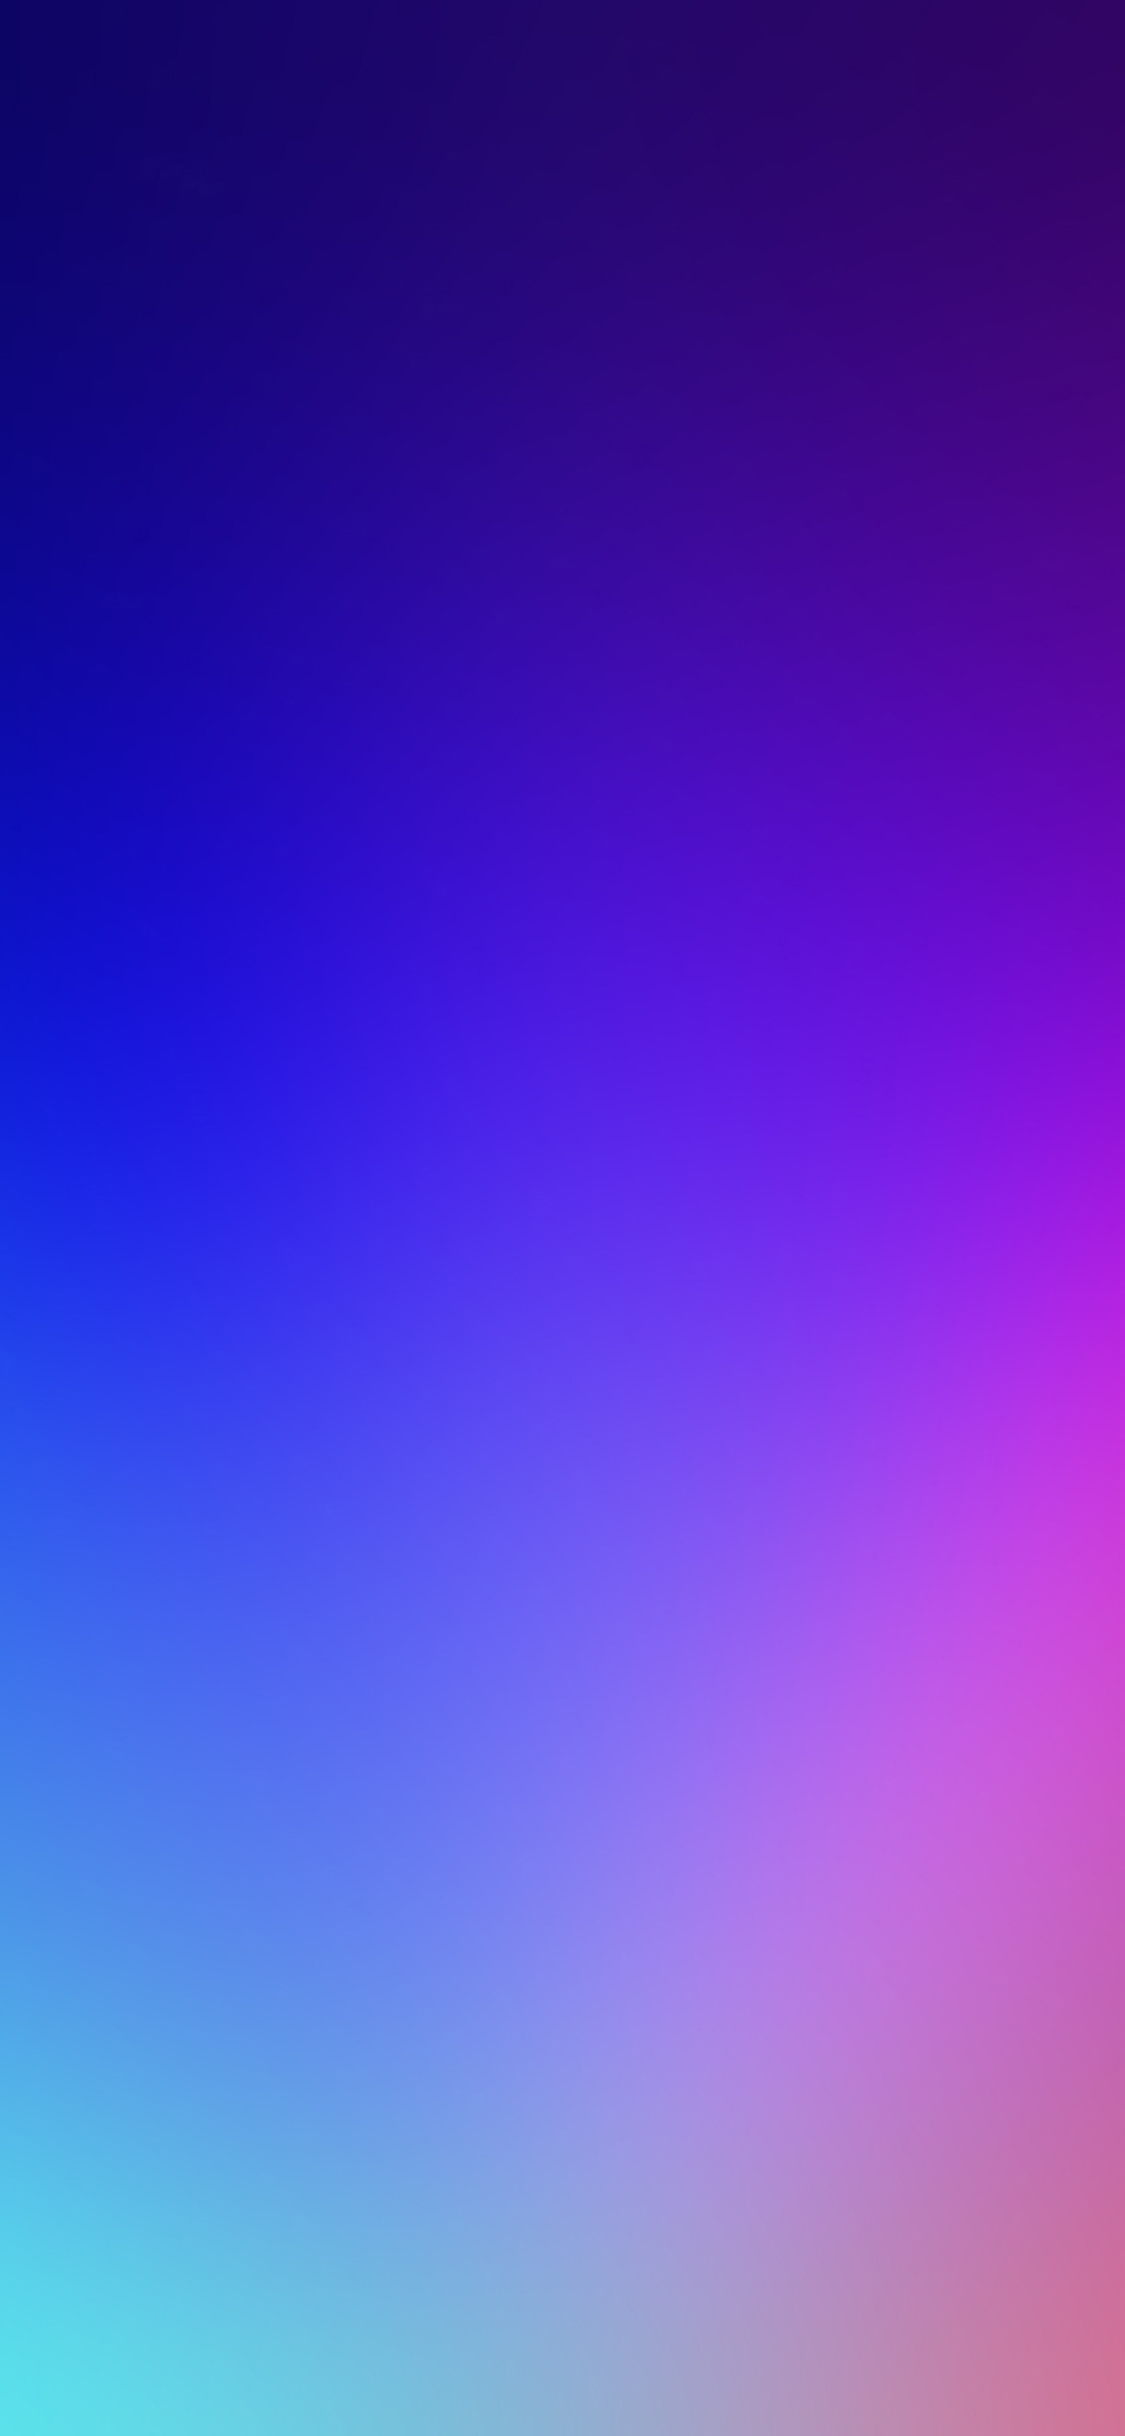 iPhoneXpapers.com-Apple-iPhone-wallpaper-sb62-wallpaper-rainbow-blue-lights-patterns-blur